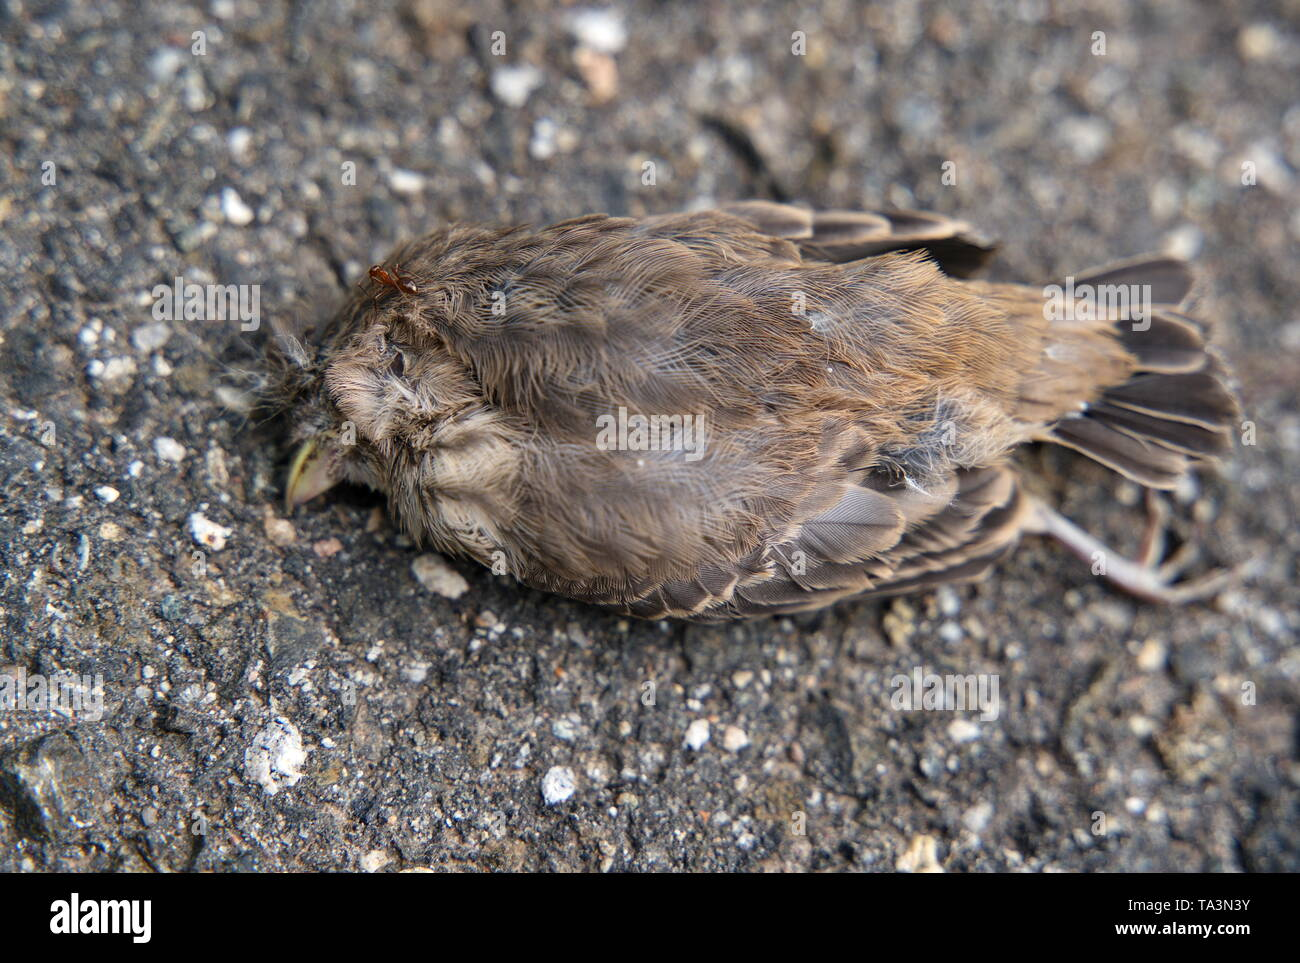 An individual scout ant gets lucky and finds a dead bird ready to be scavenged by an army of worker ants and delivered back to the colony. - Stock Image